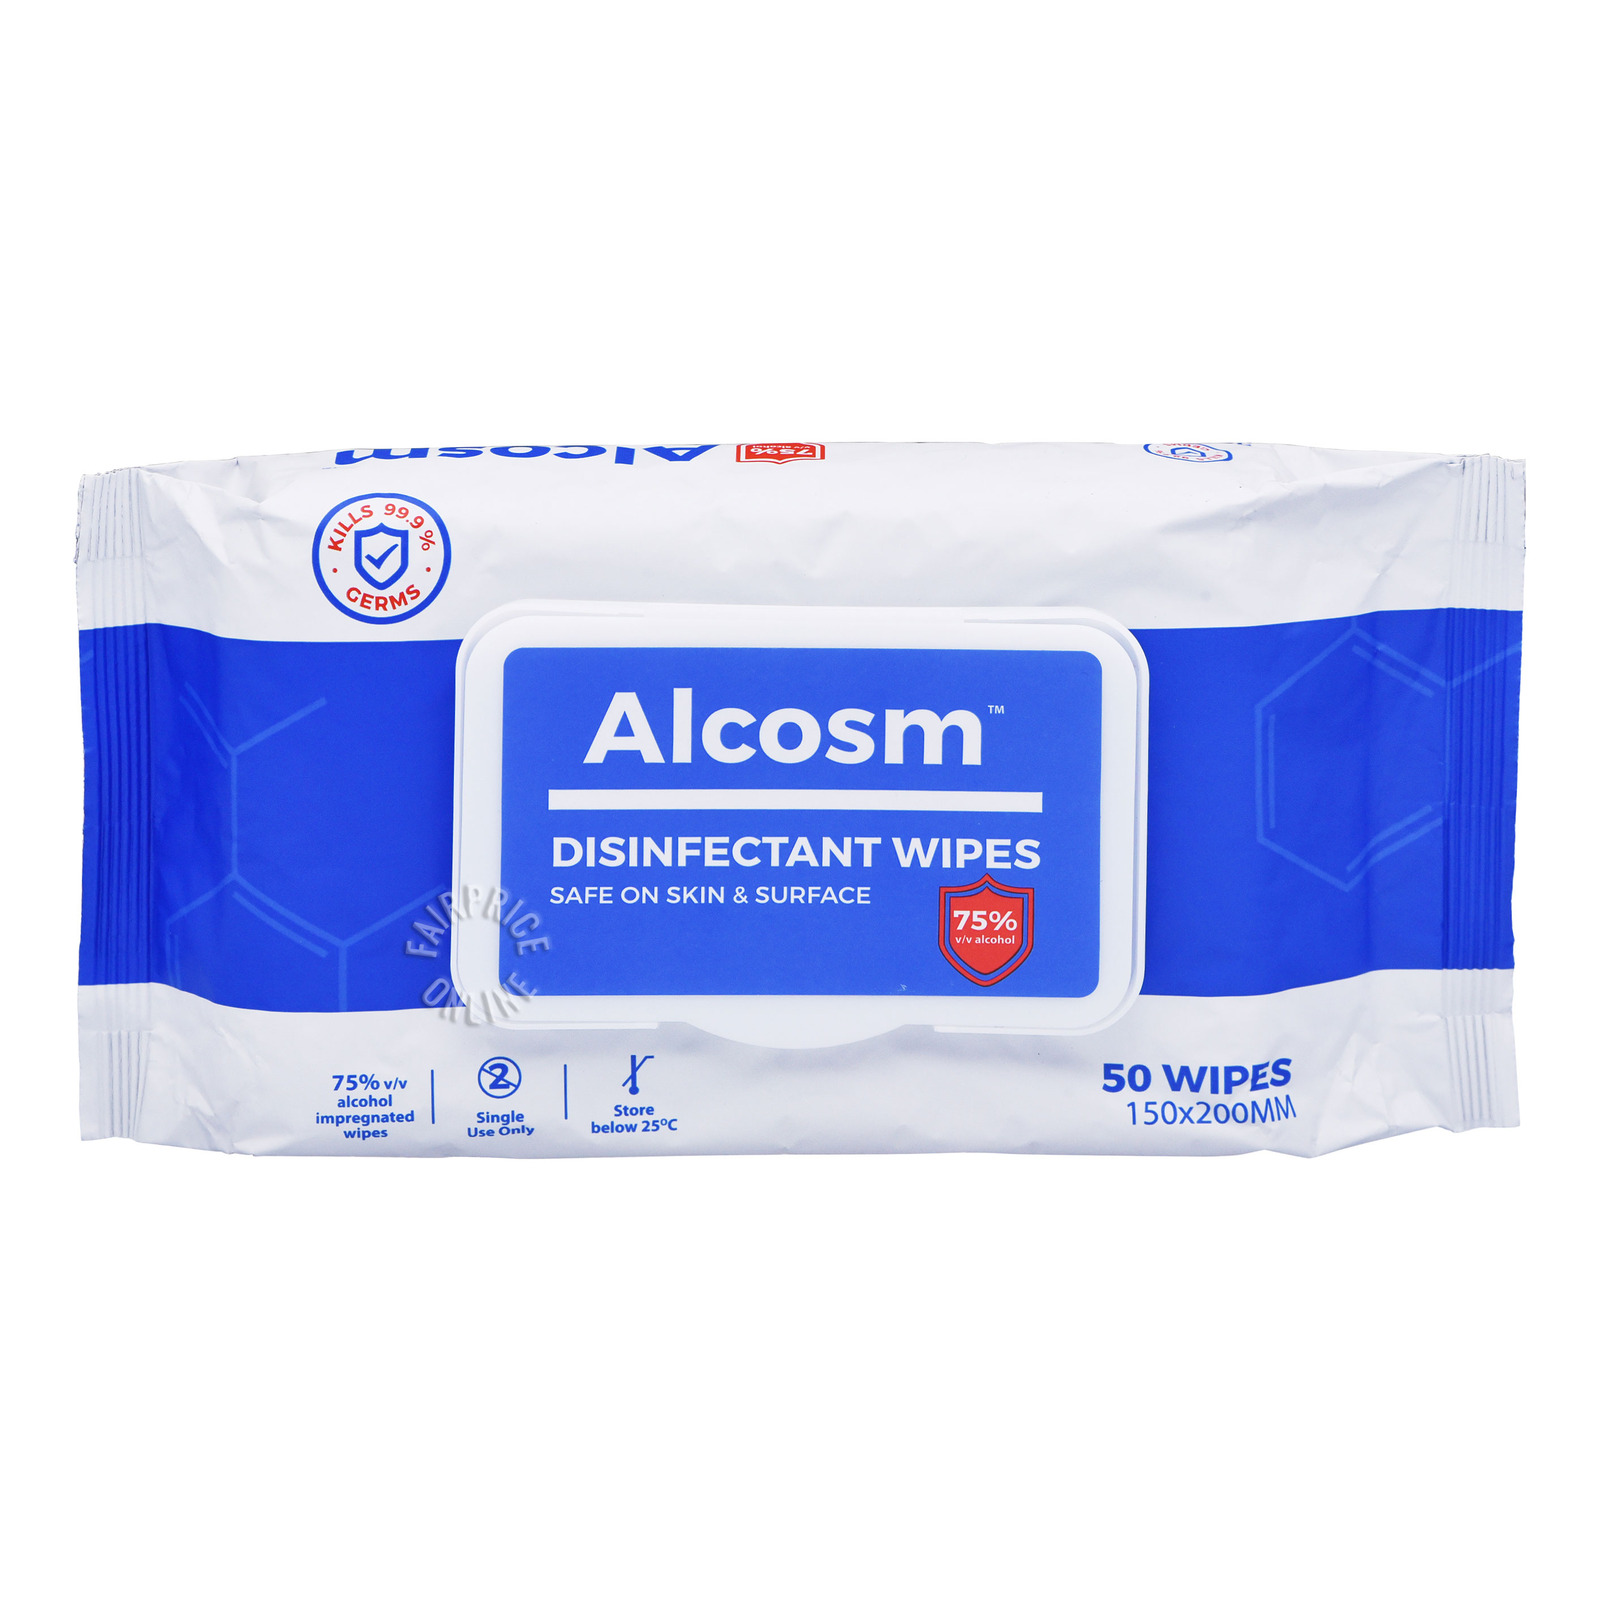 Alcosm Disinfectant Wipes